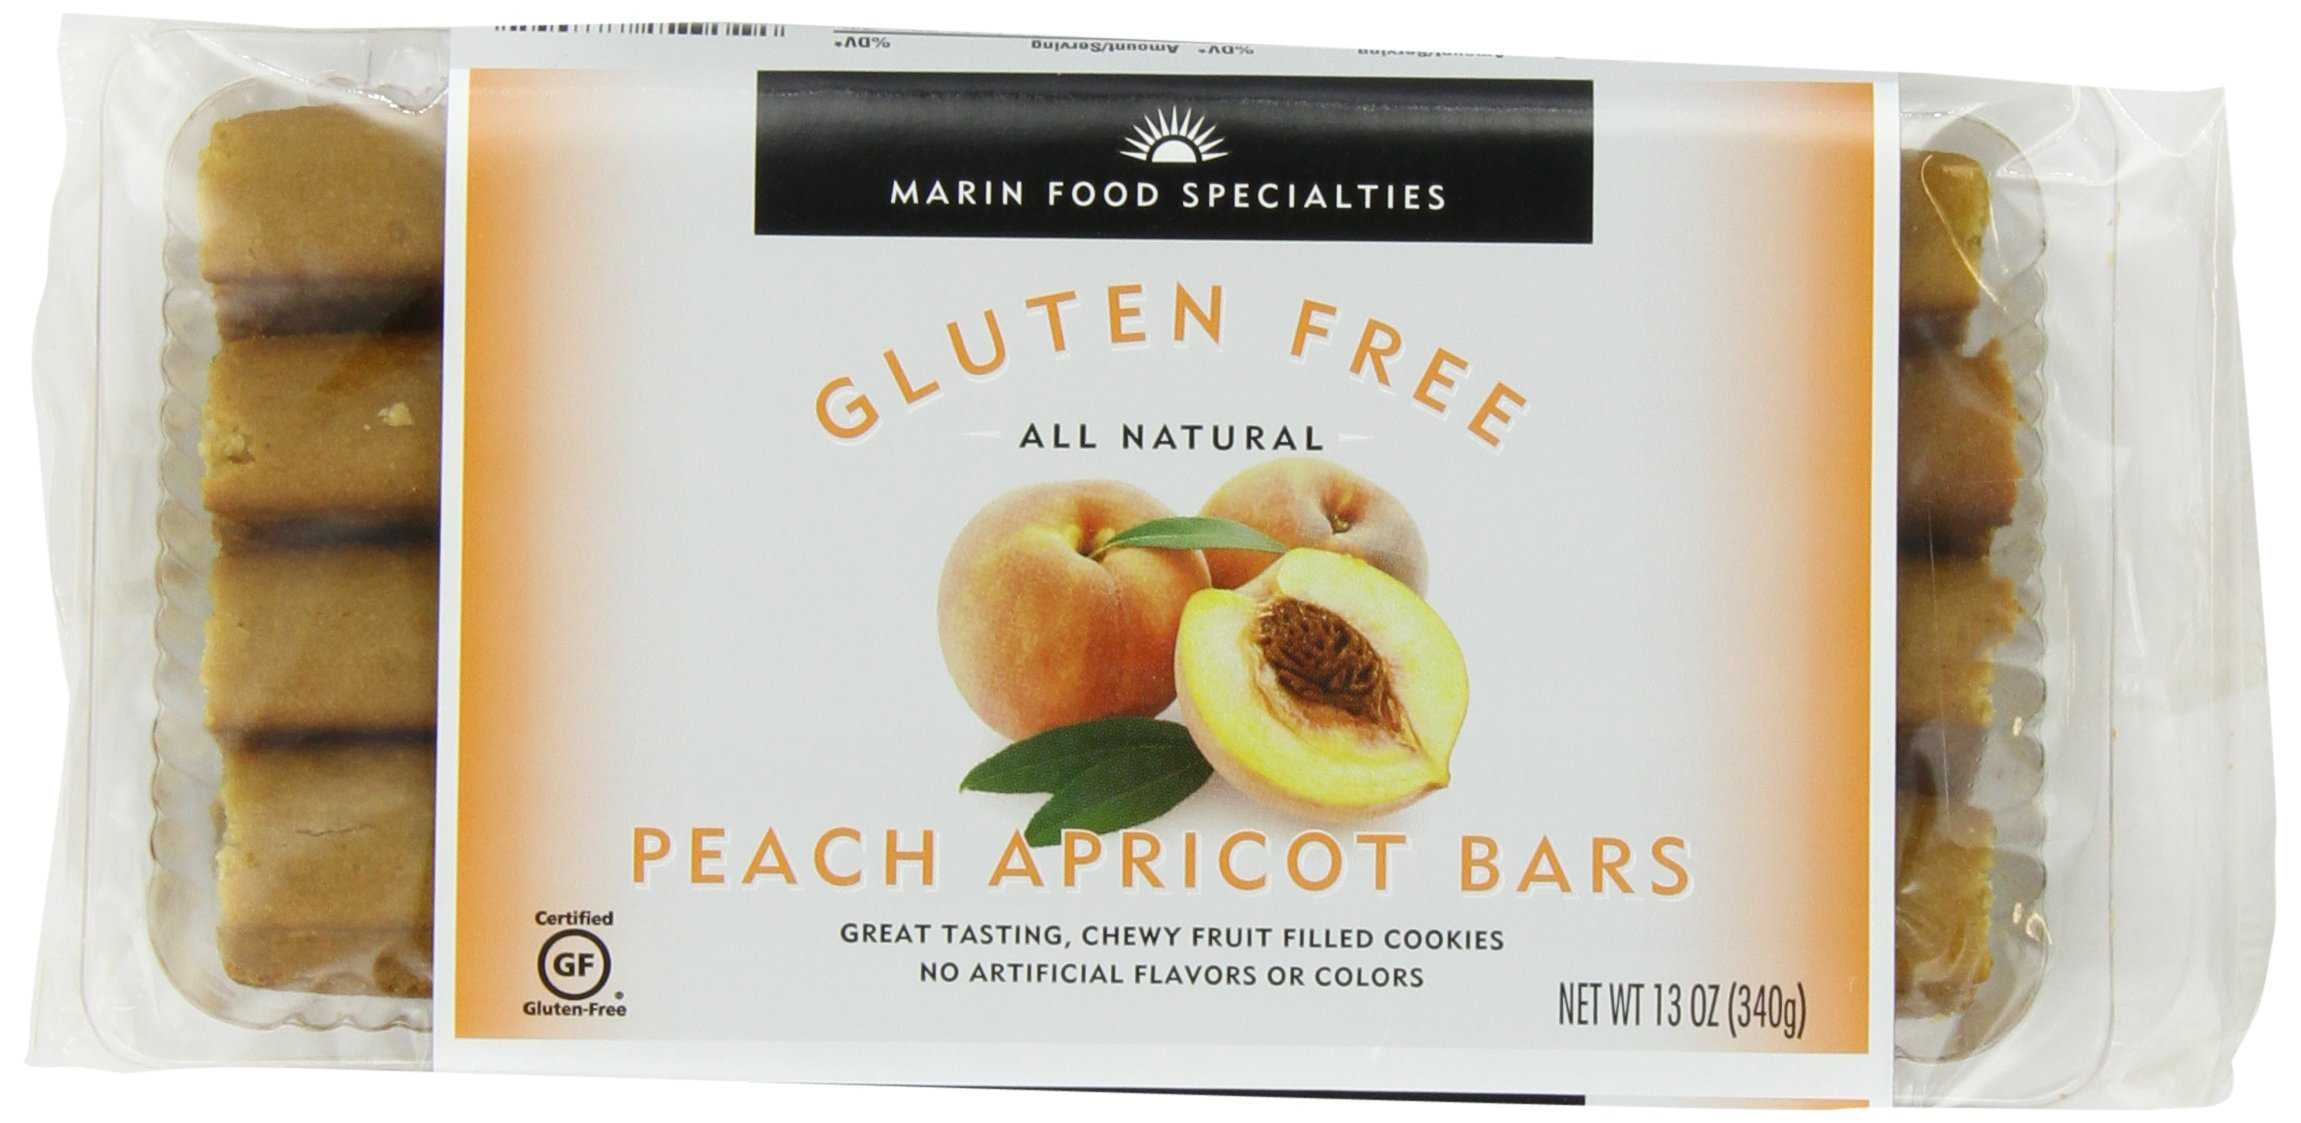 Marin Gluten Free Fruit Bar, Apricot, 13 Ounce (Pack of 6)